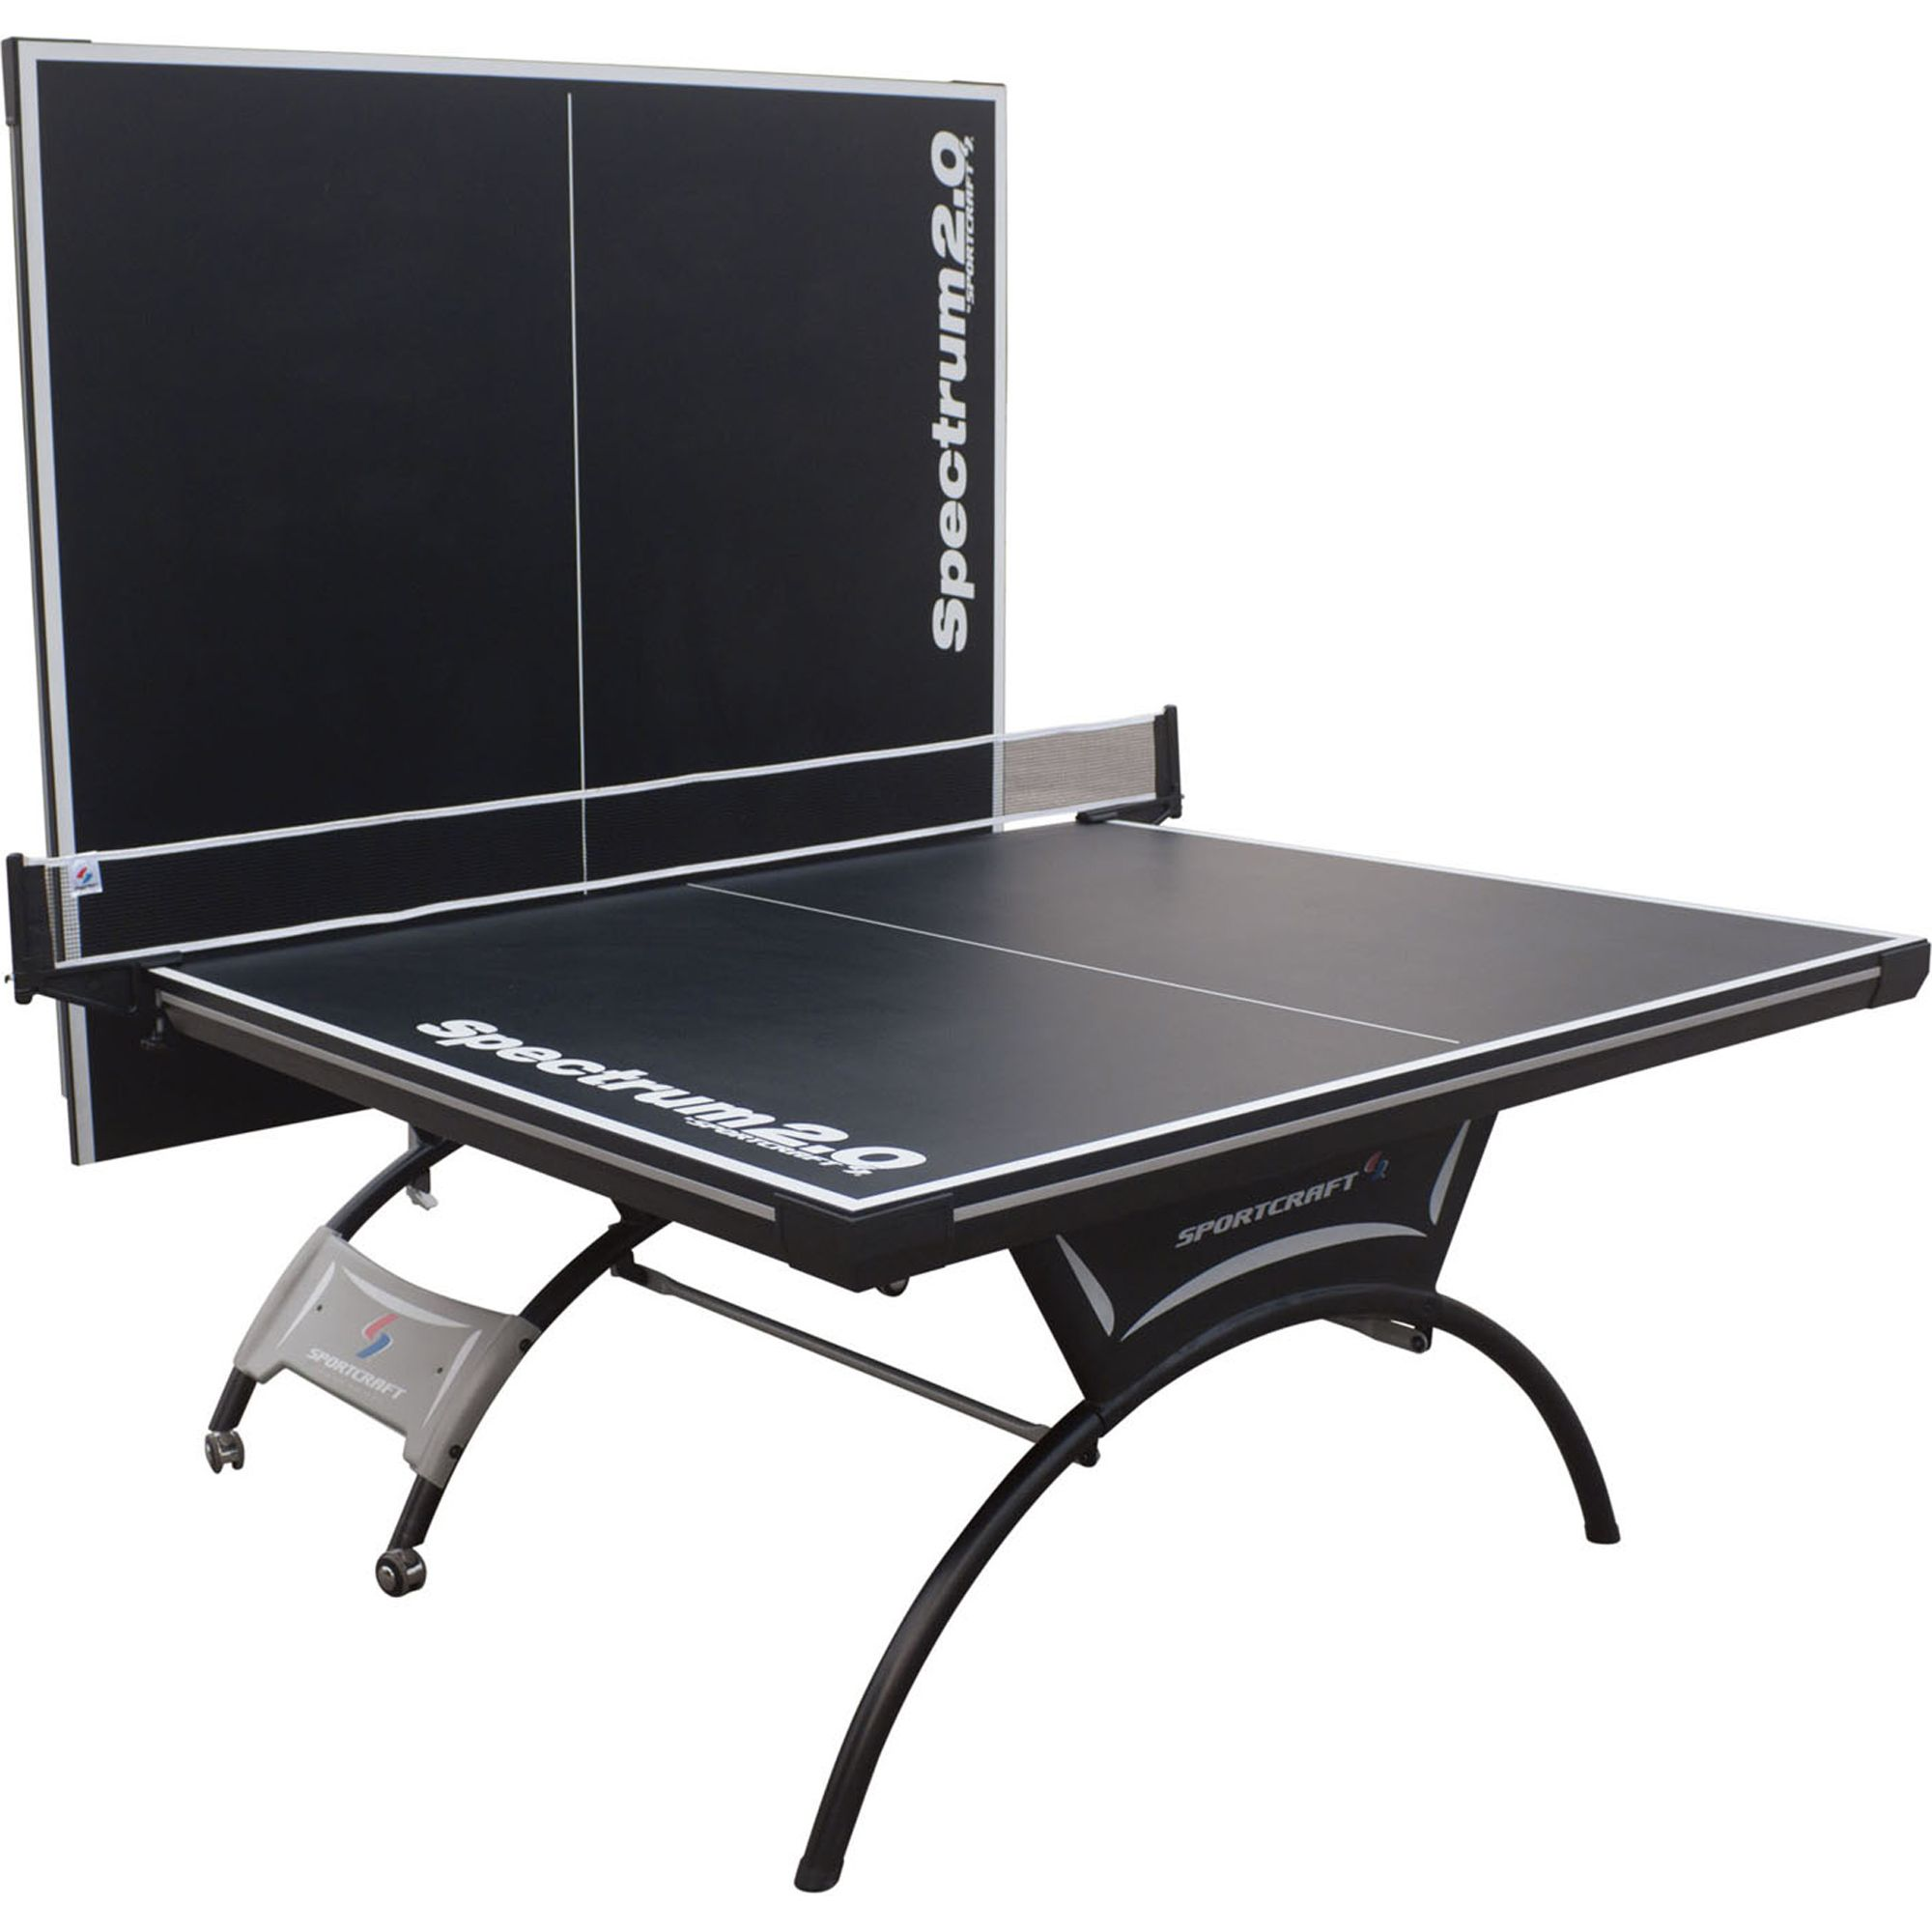 Sportcraft Spectrum 2.0 2 piece Table Tennis Table